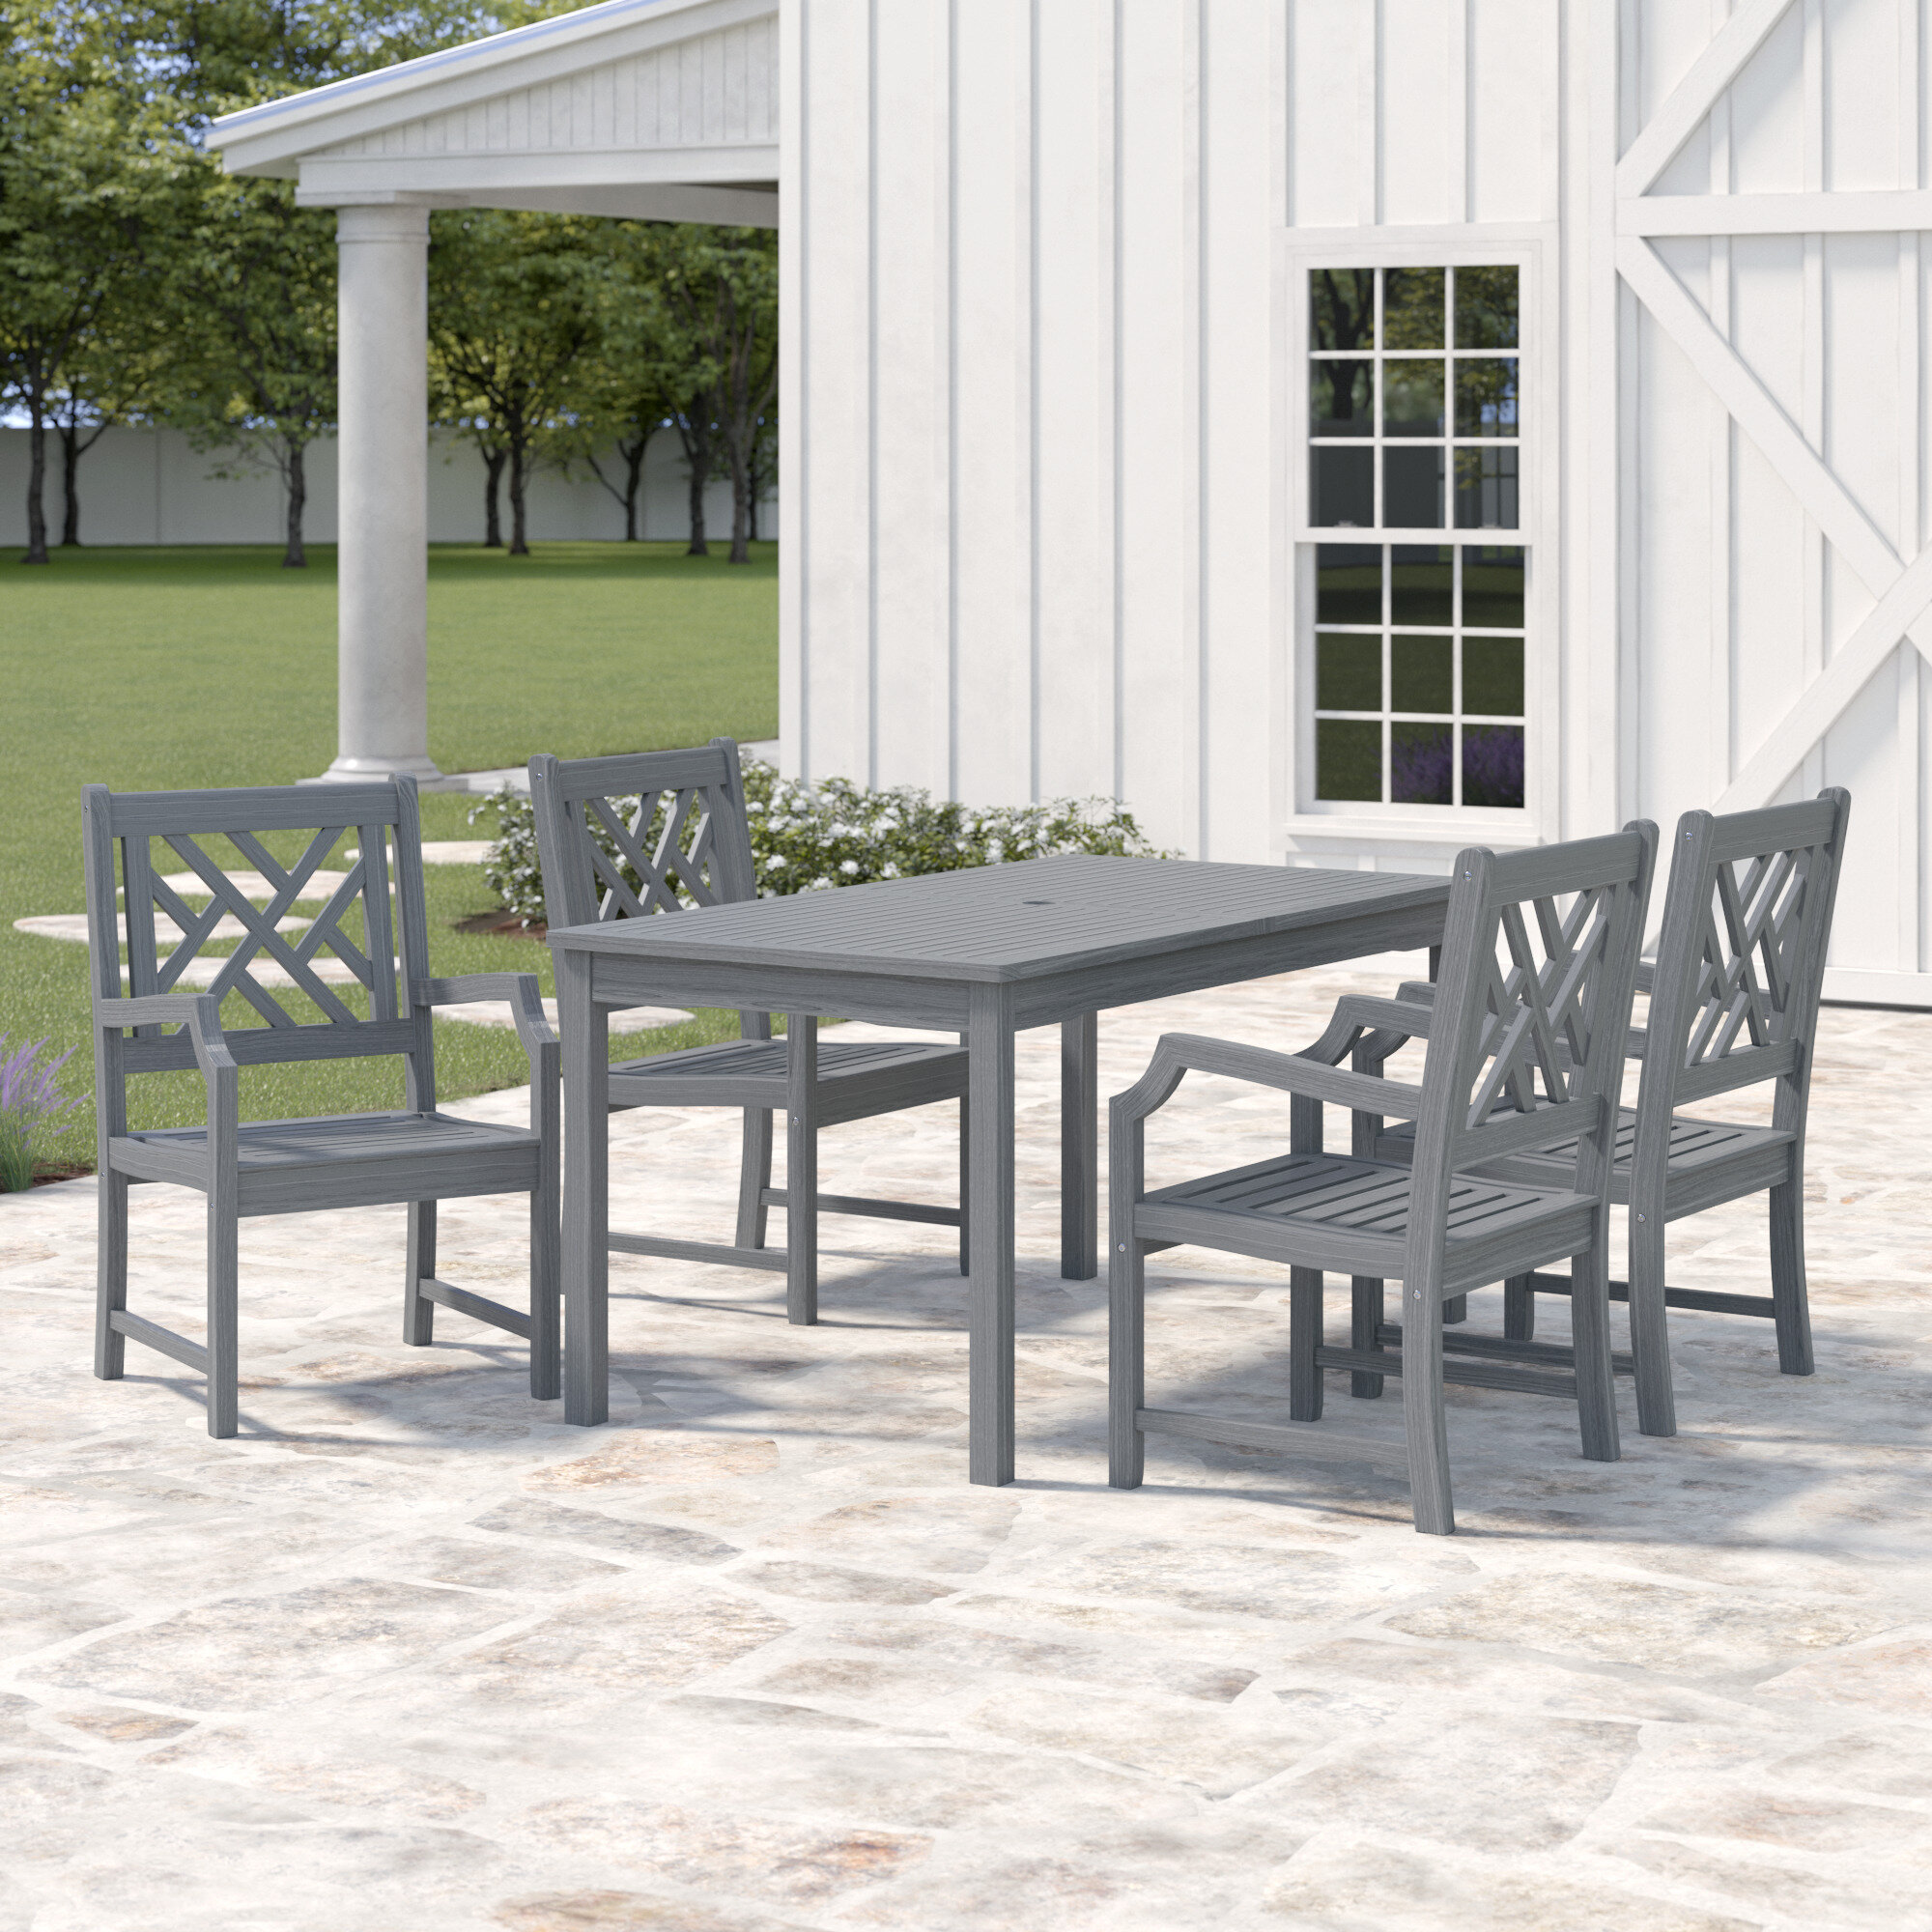 Fabulous Southport 5 Piece Dining Set With Umbrella Ibusinesslaw Wood Chair Design Ideas Ibusinesslaworg